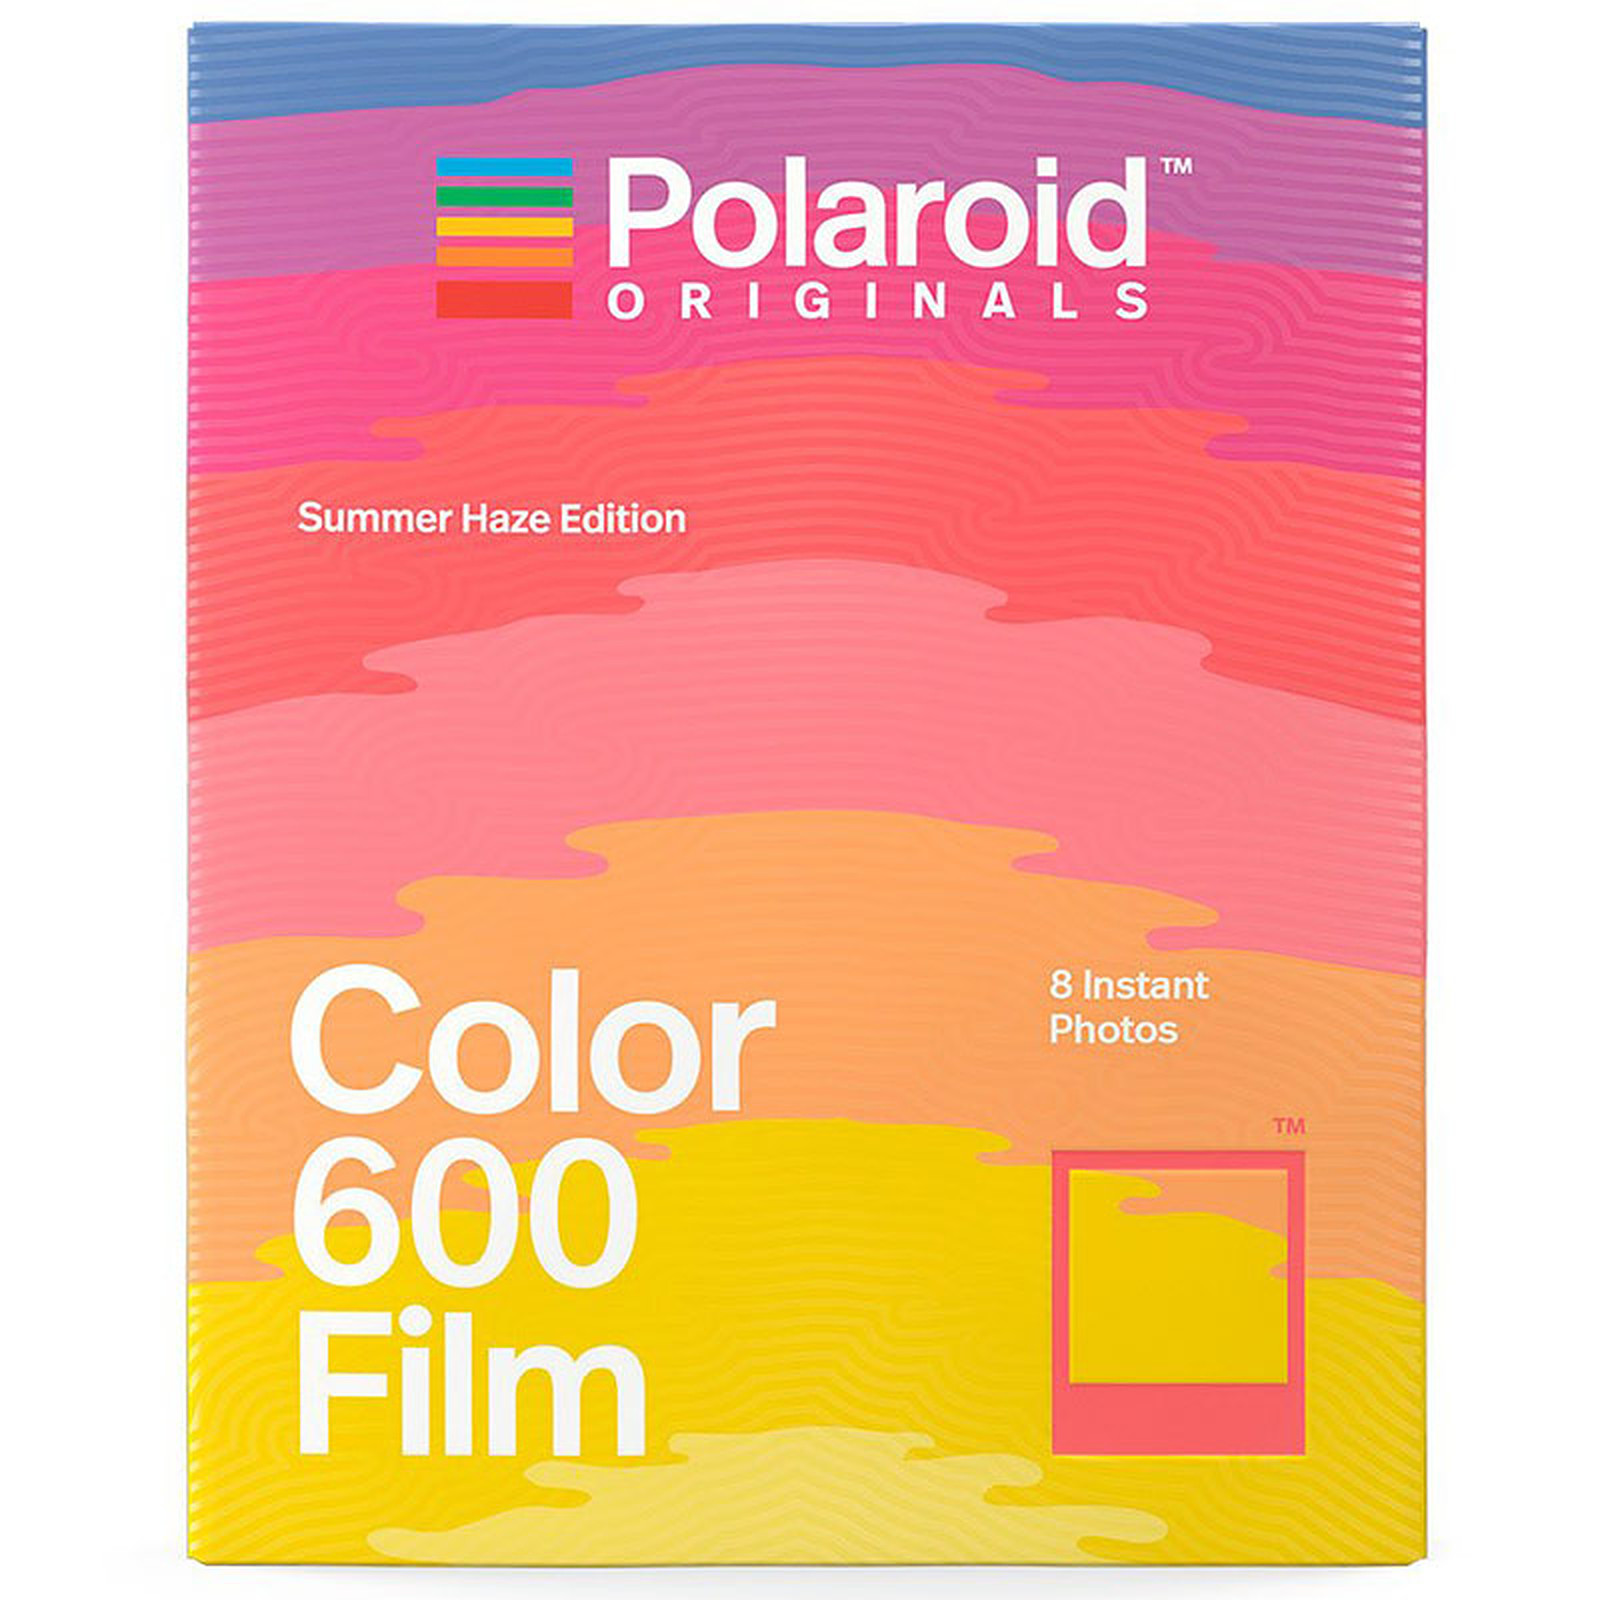 Polaroid Color 600 Film Summer Haze